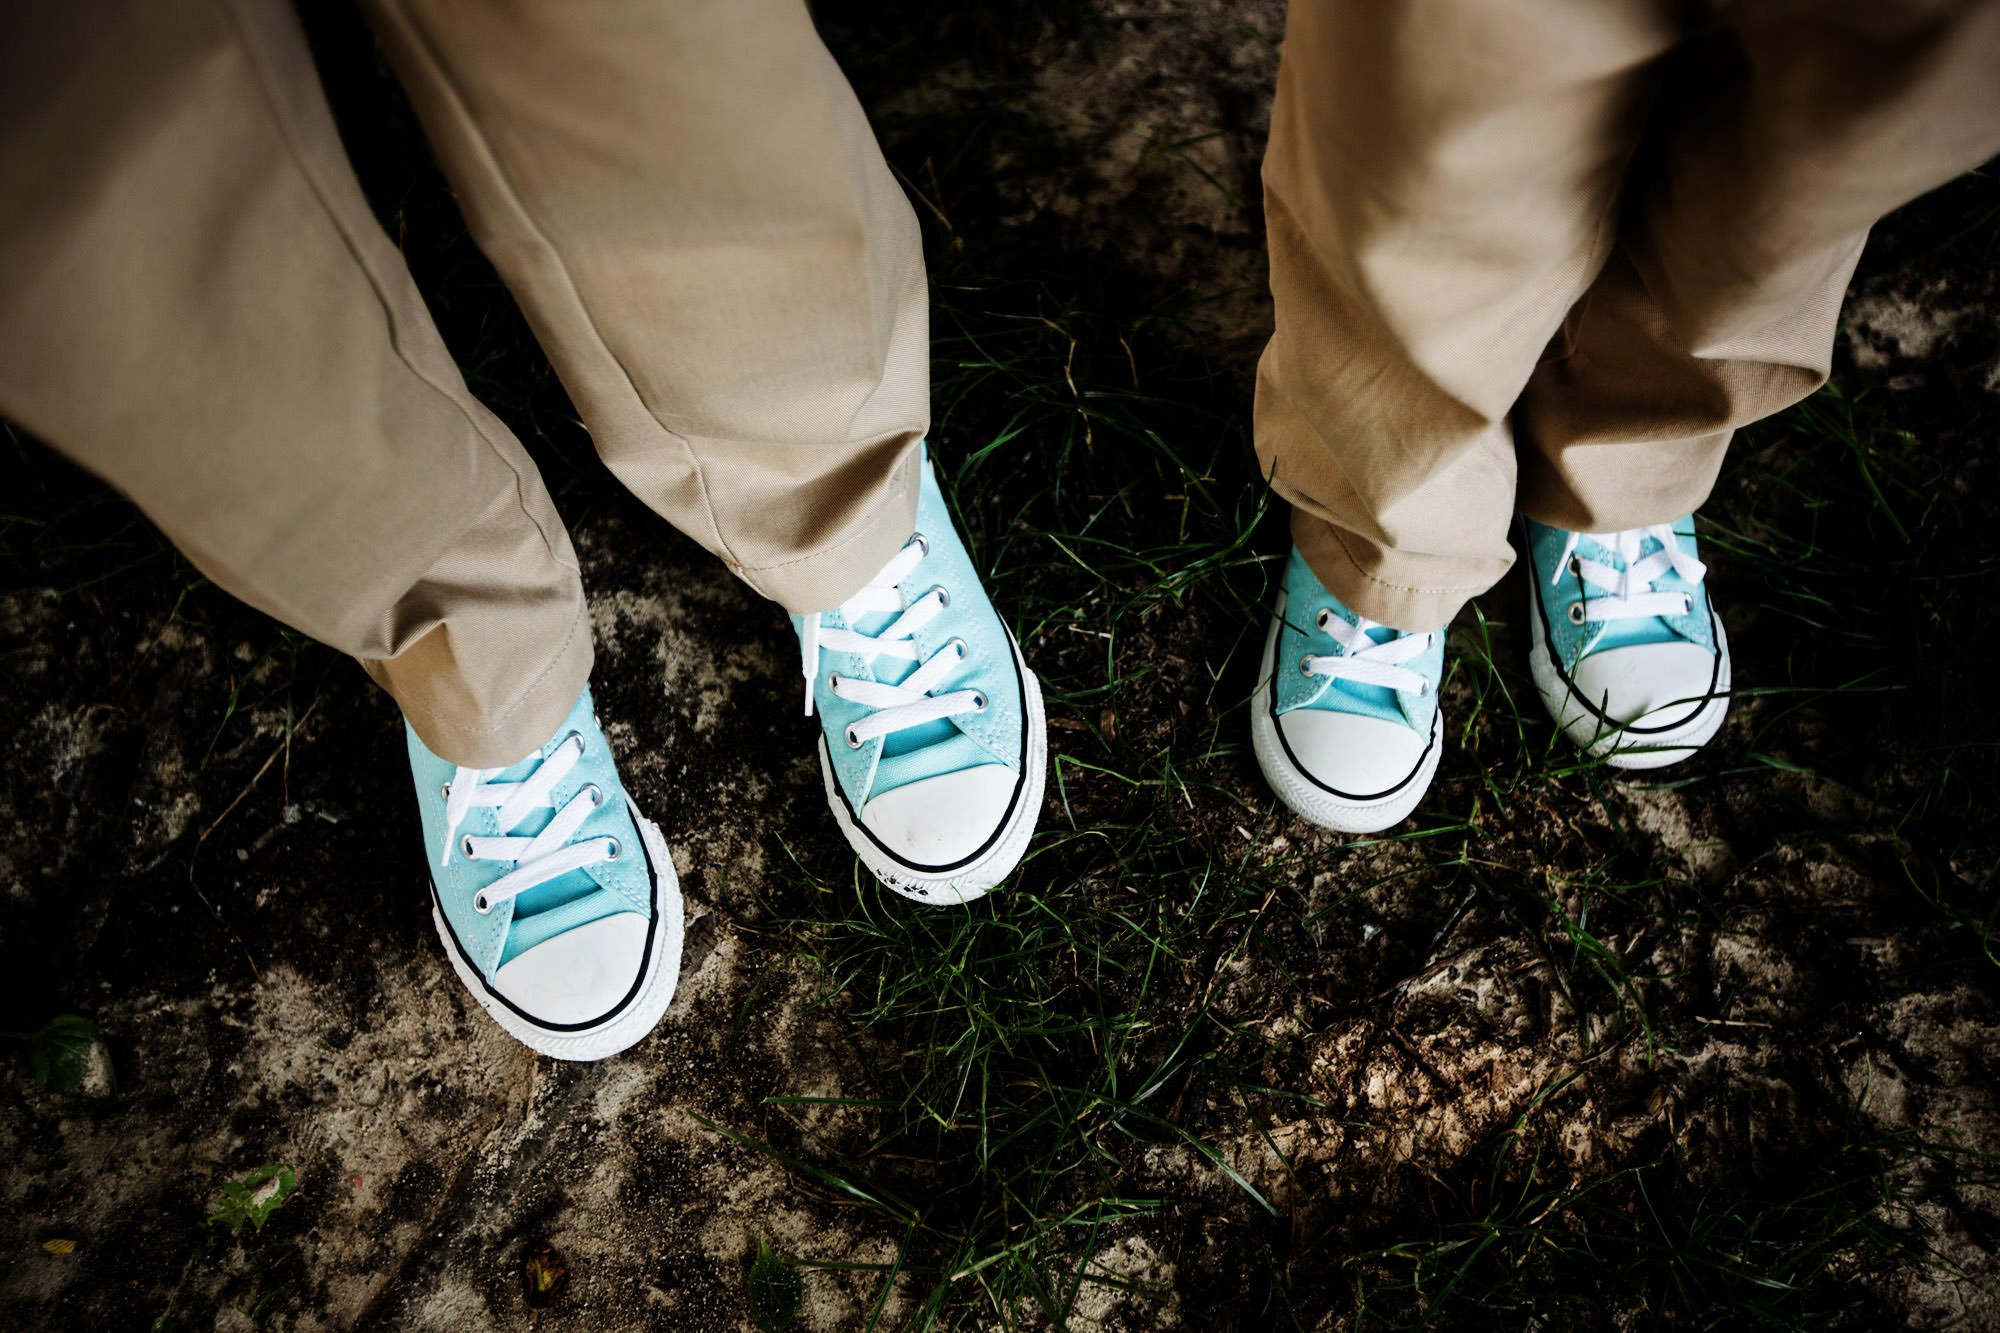 Details of the shoes worn by the ring bearers.